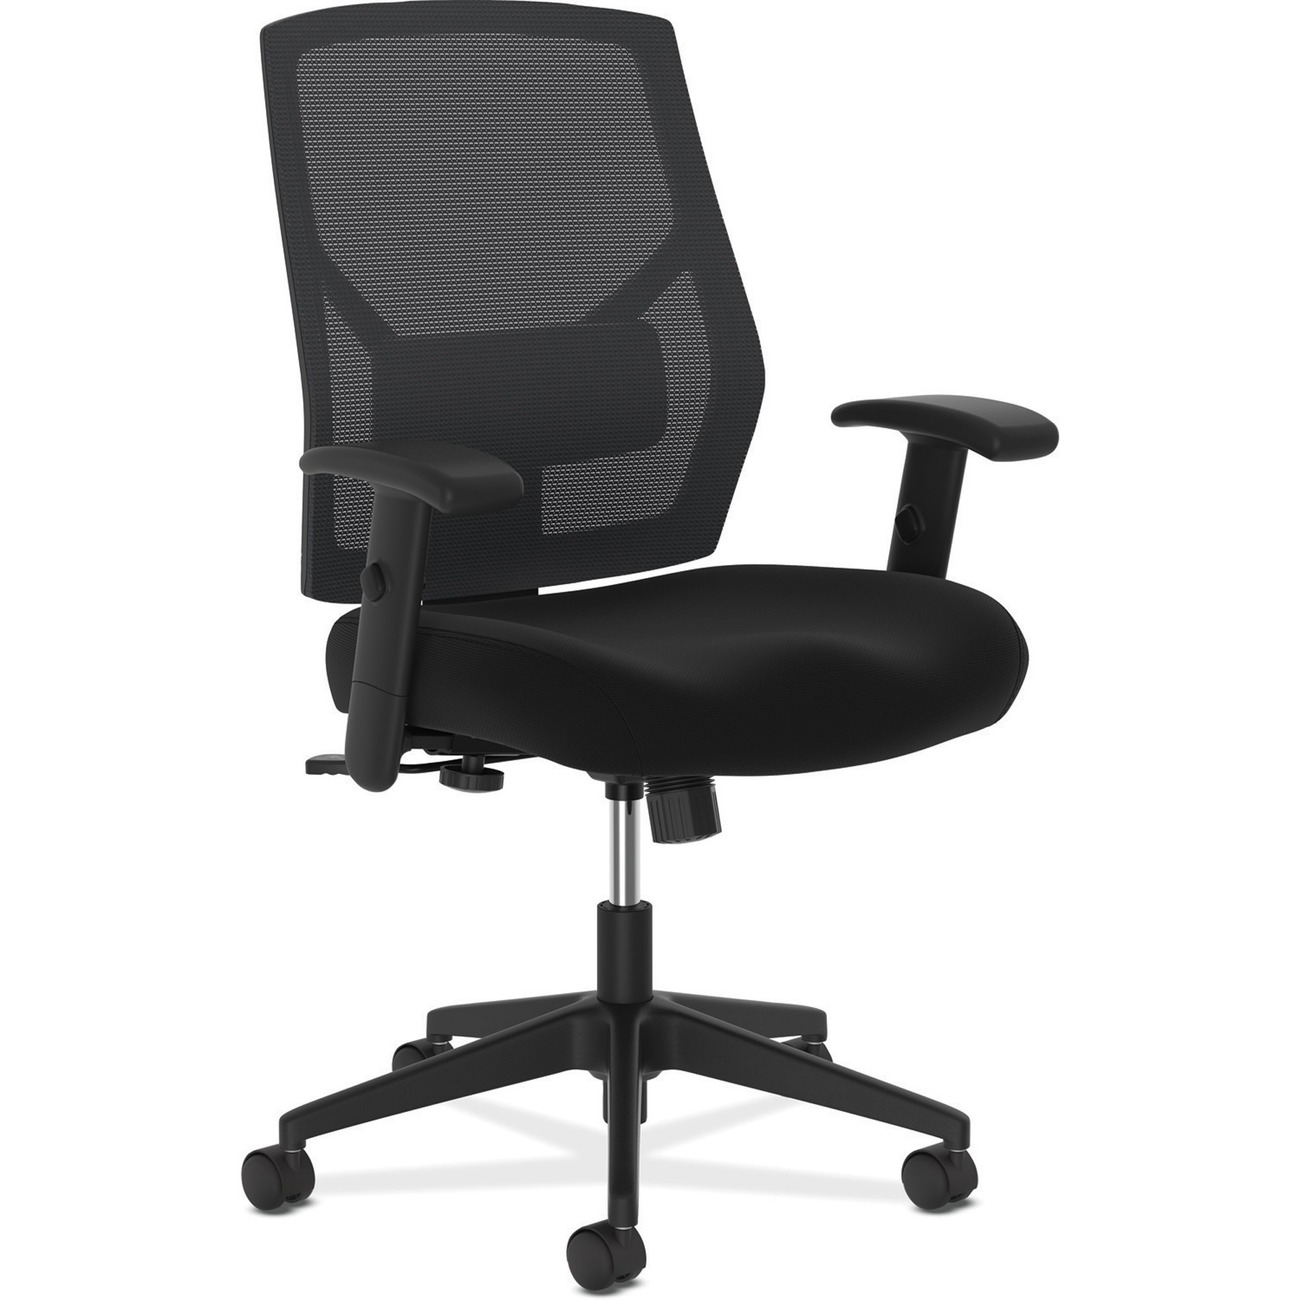 chairs endorsechrome office executive with chrome hon s universal carroll furniture brand endorse page pages chair arms product